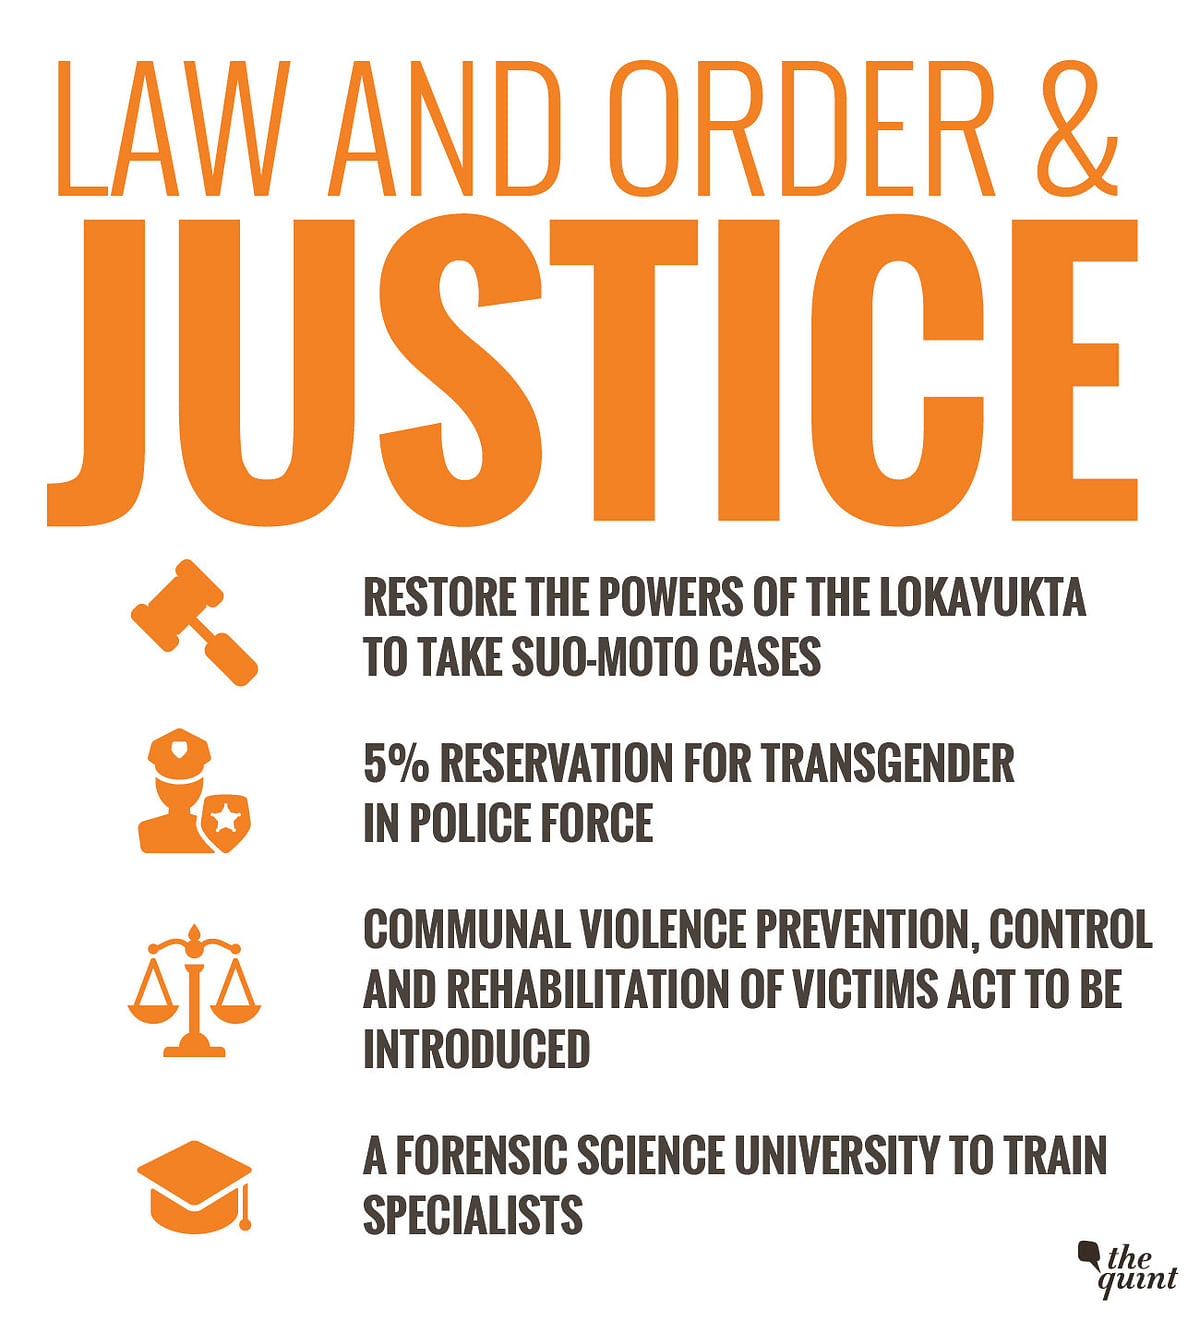 Law and Order and Justice